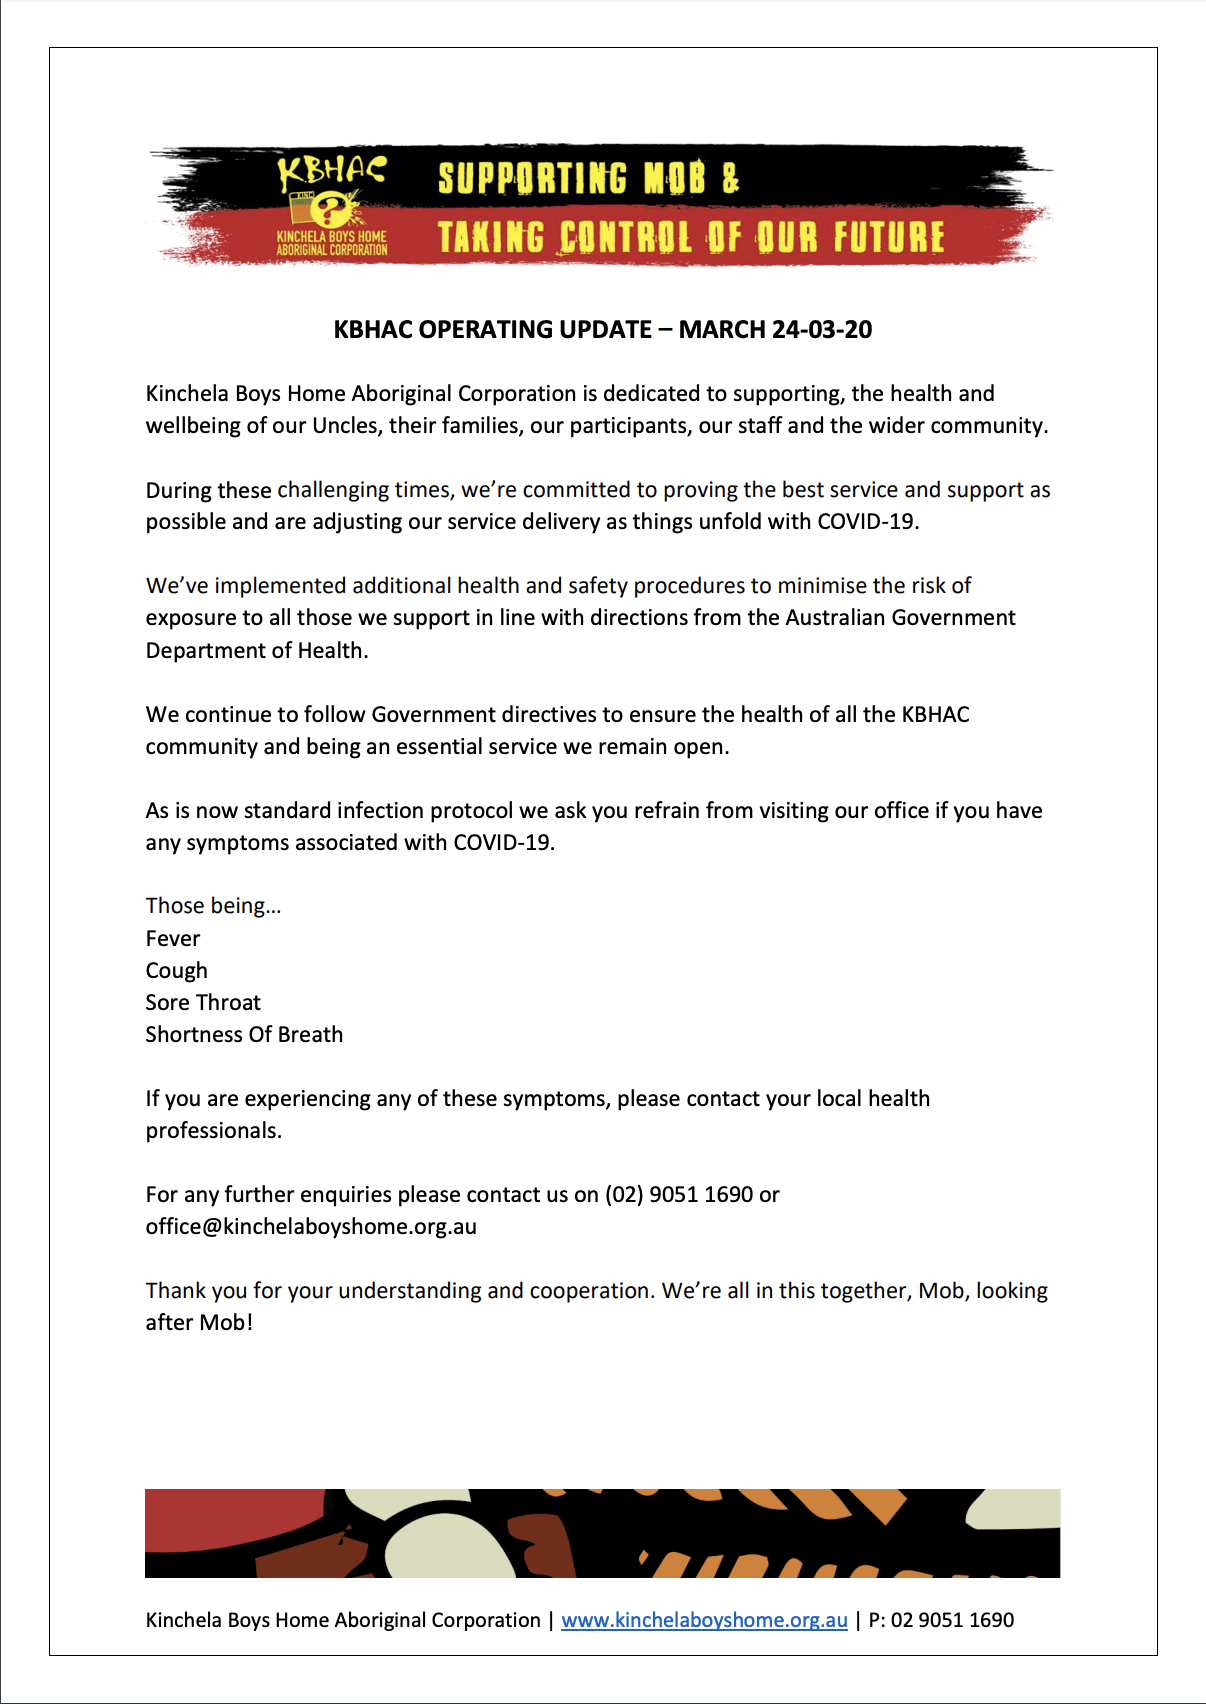 KBHAC Operating Update - March 24-03-20